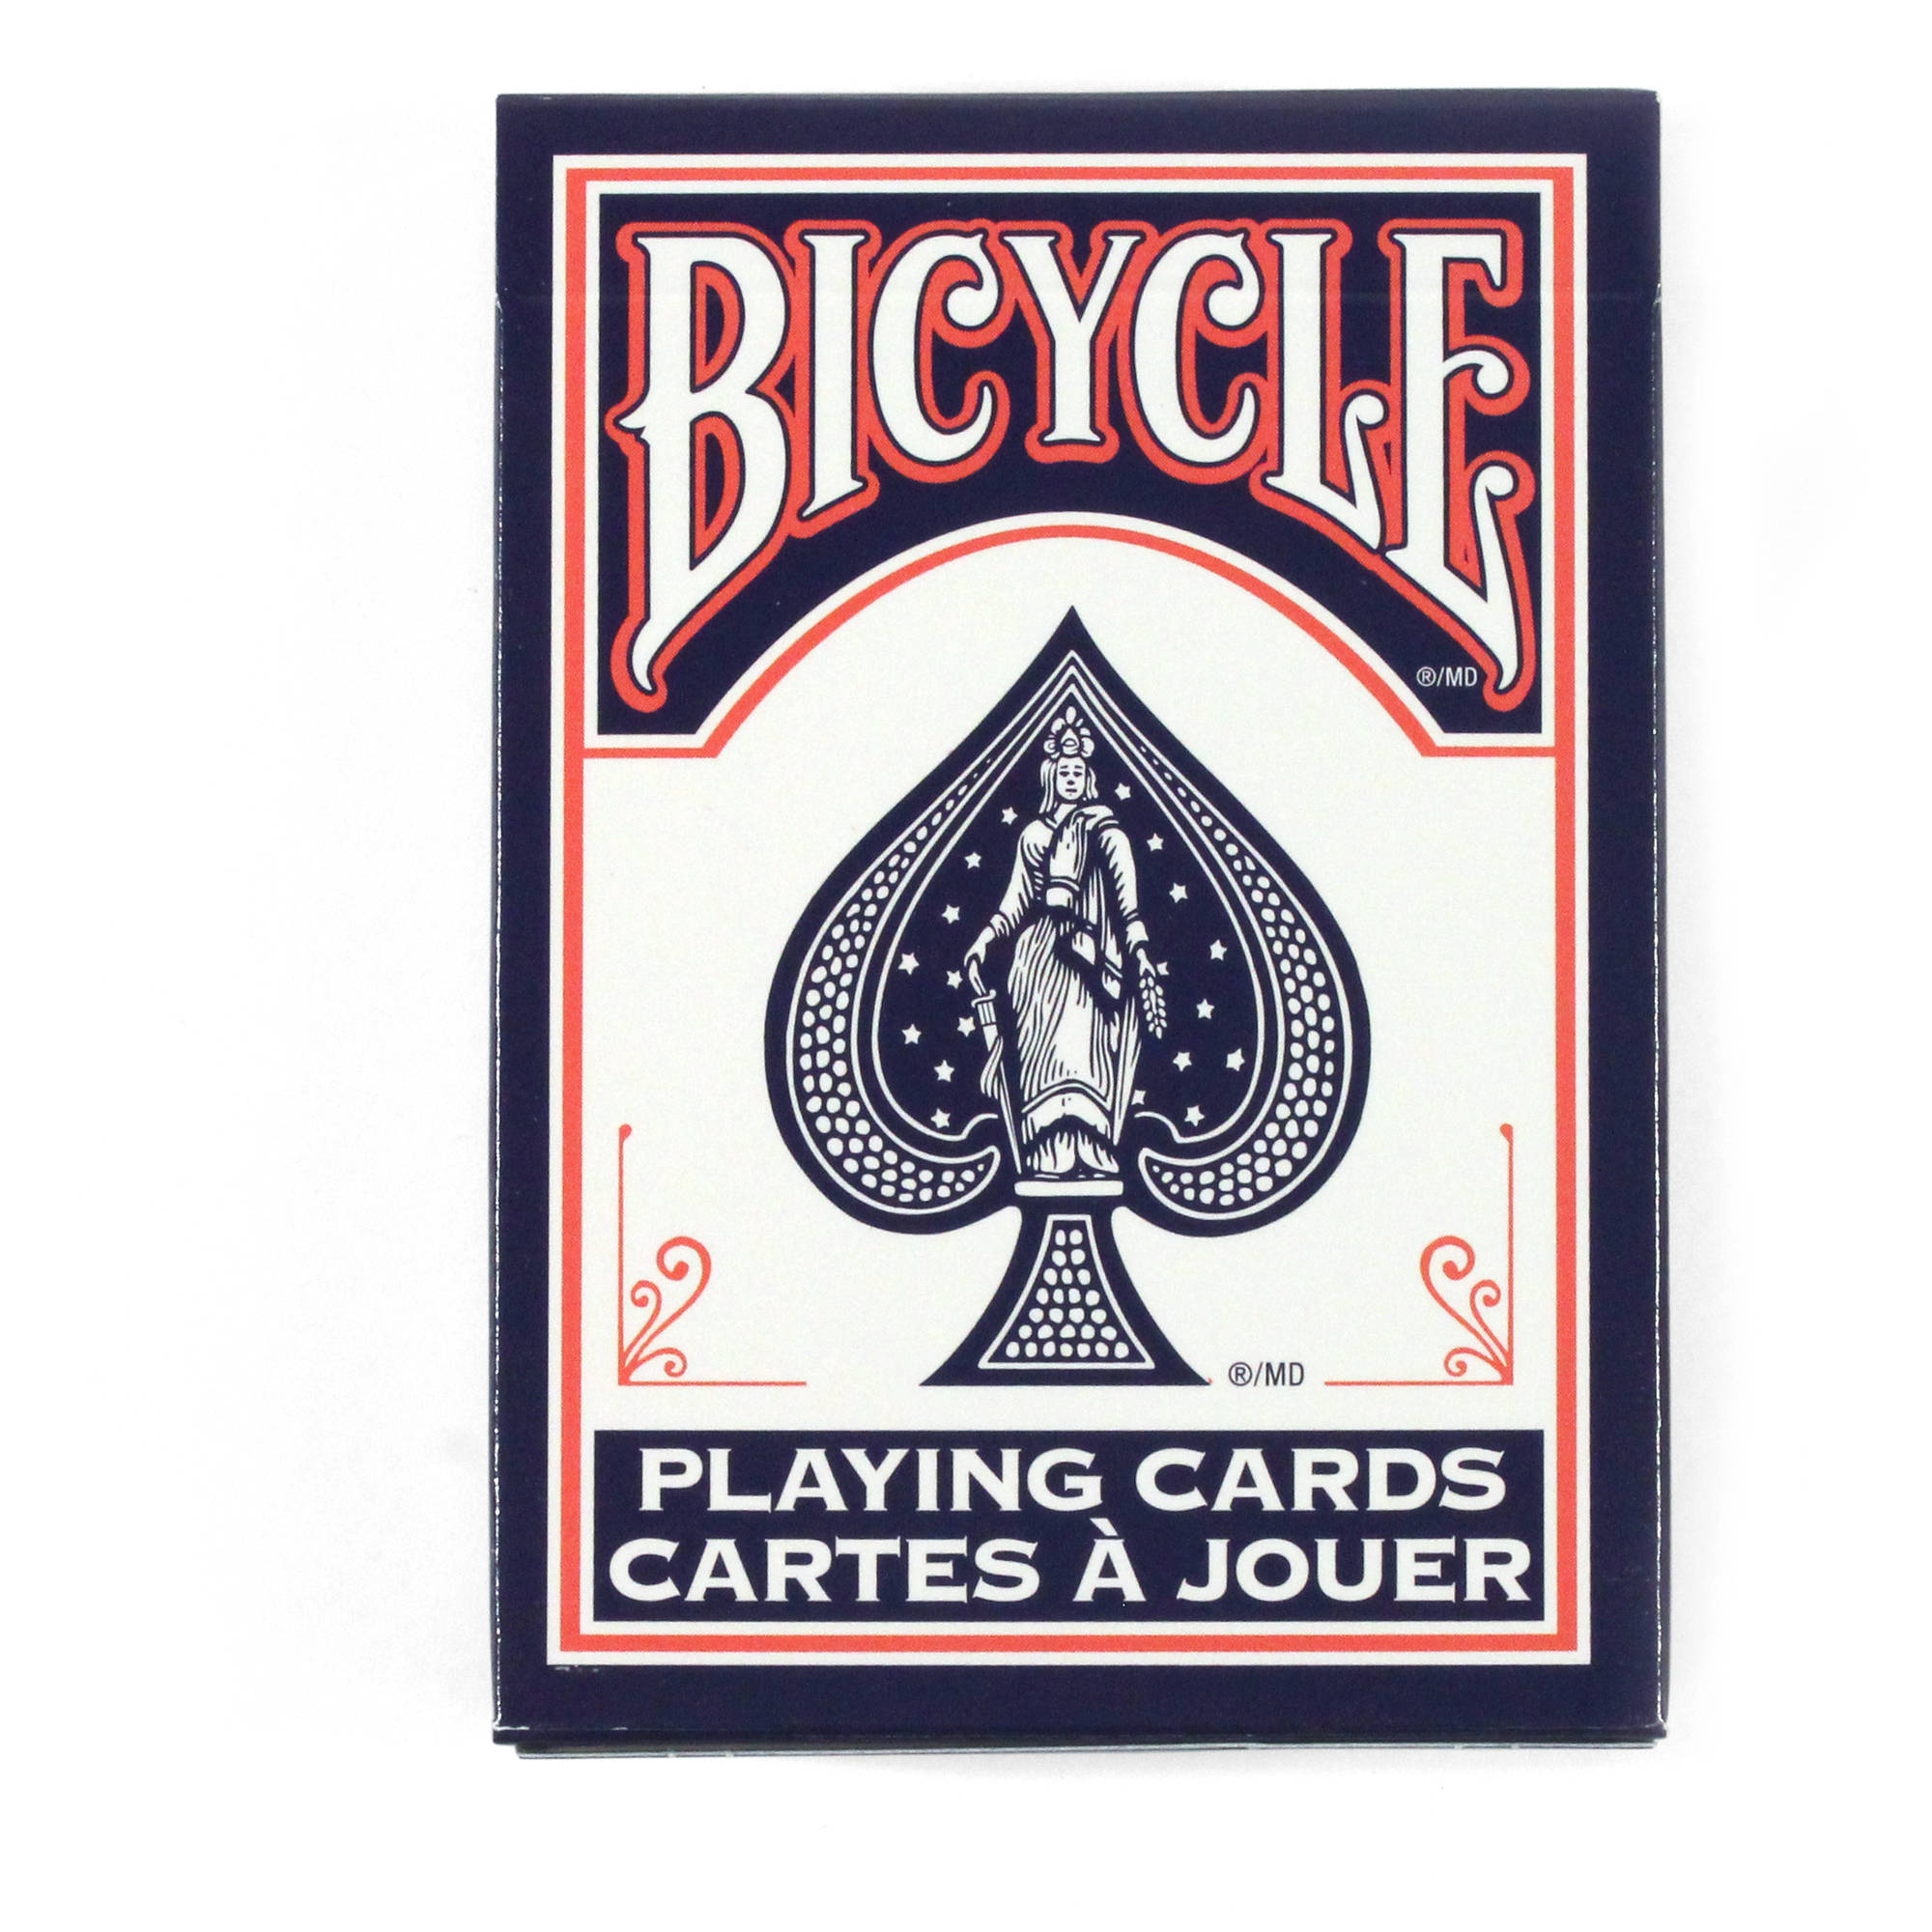 Bicycle Specialty Card Deck Assortment